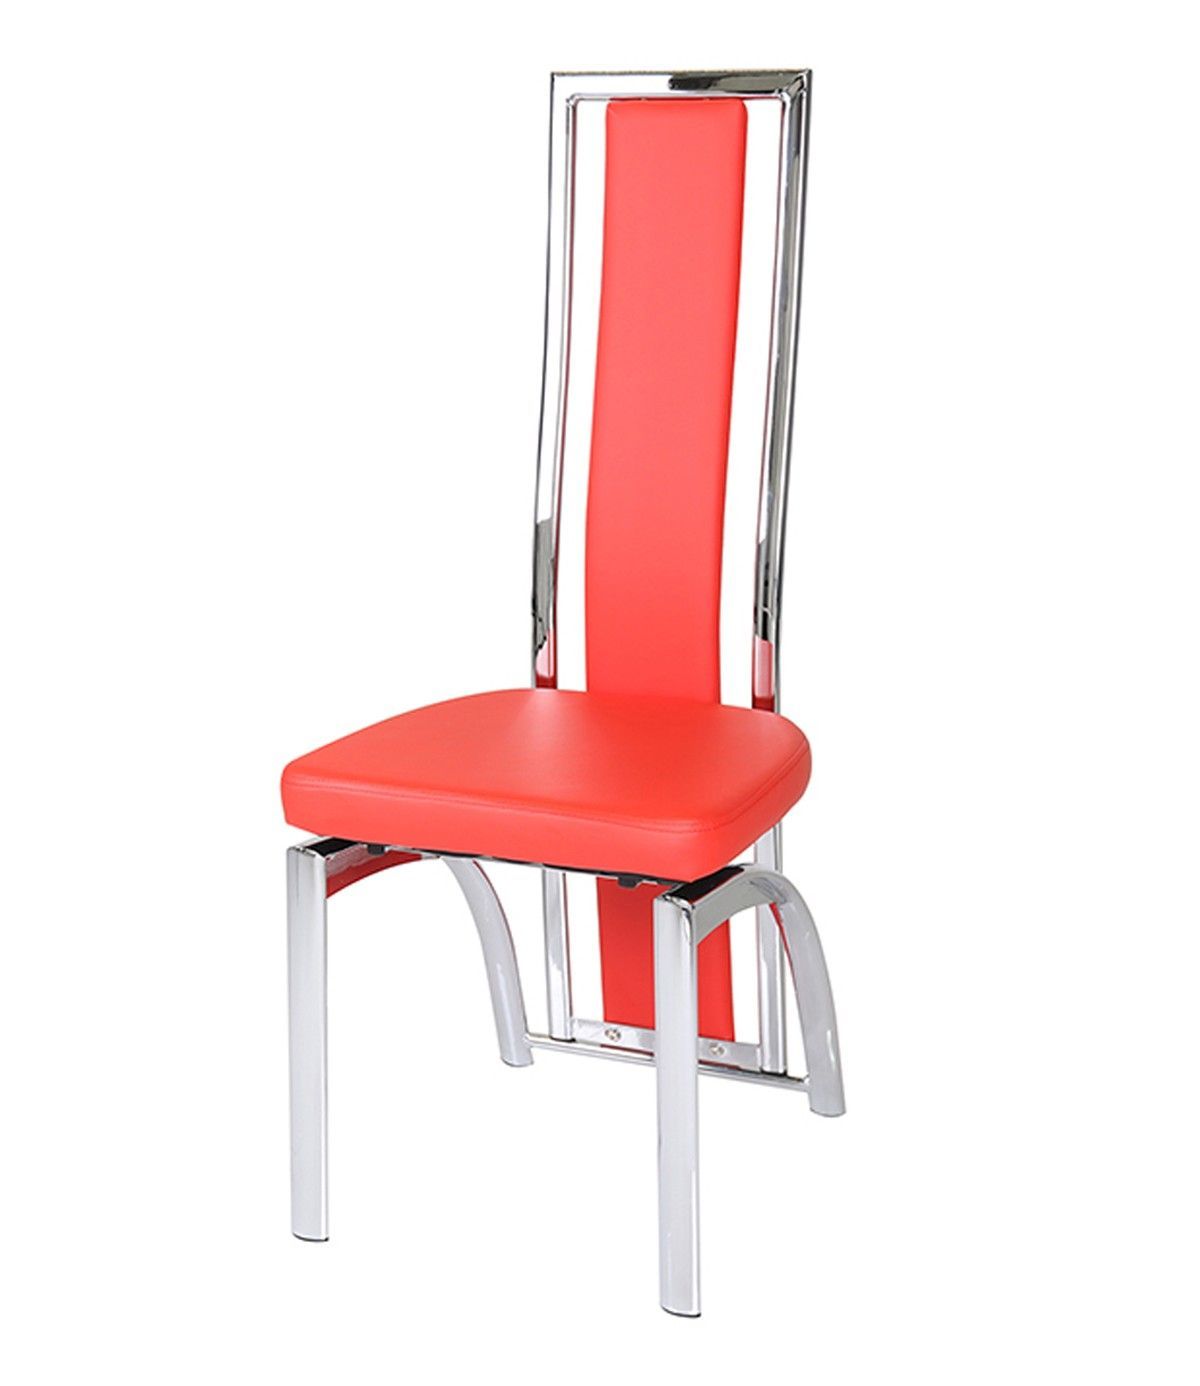 Wondrous Mayfair High Back Faux Leather And Chrome Red Dining Chair Gmtry Best Dining Table And Chair Ideas Images Gmtryco